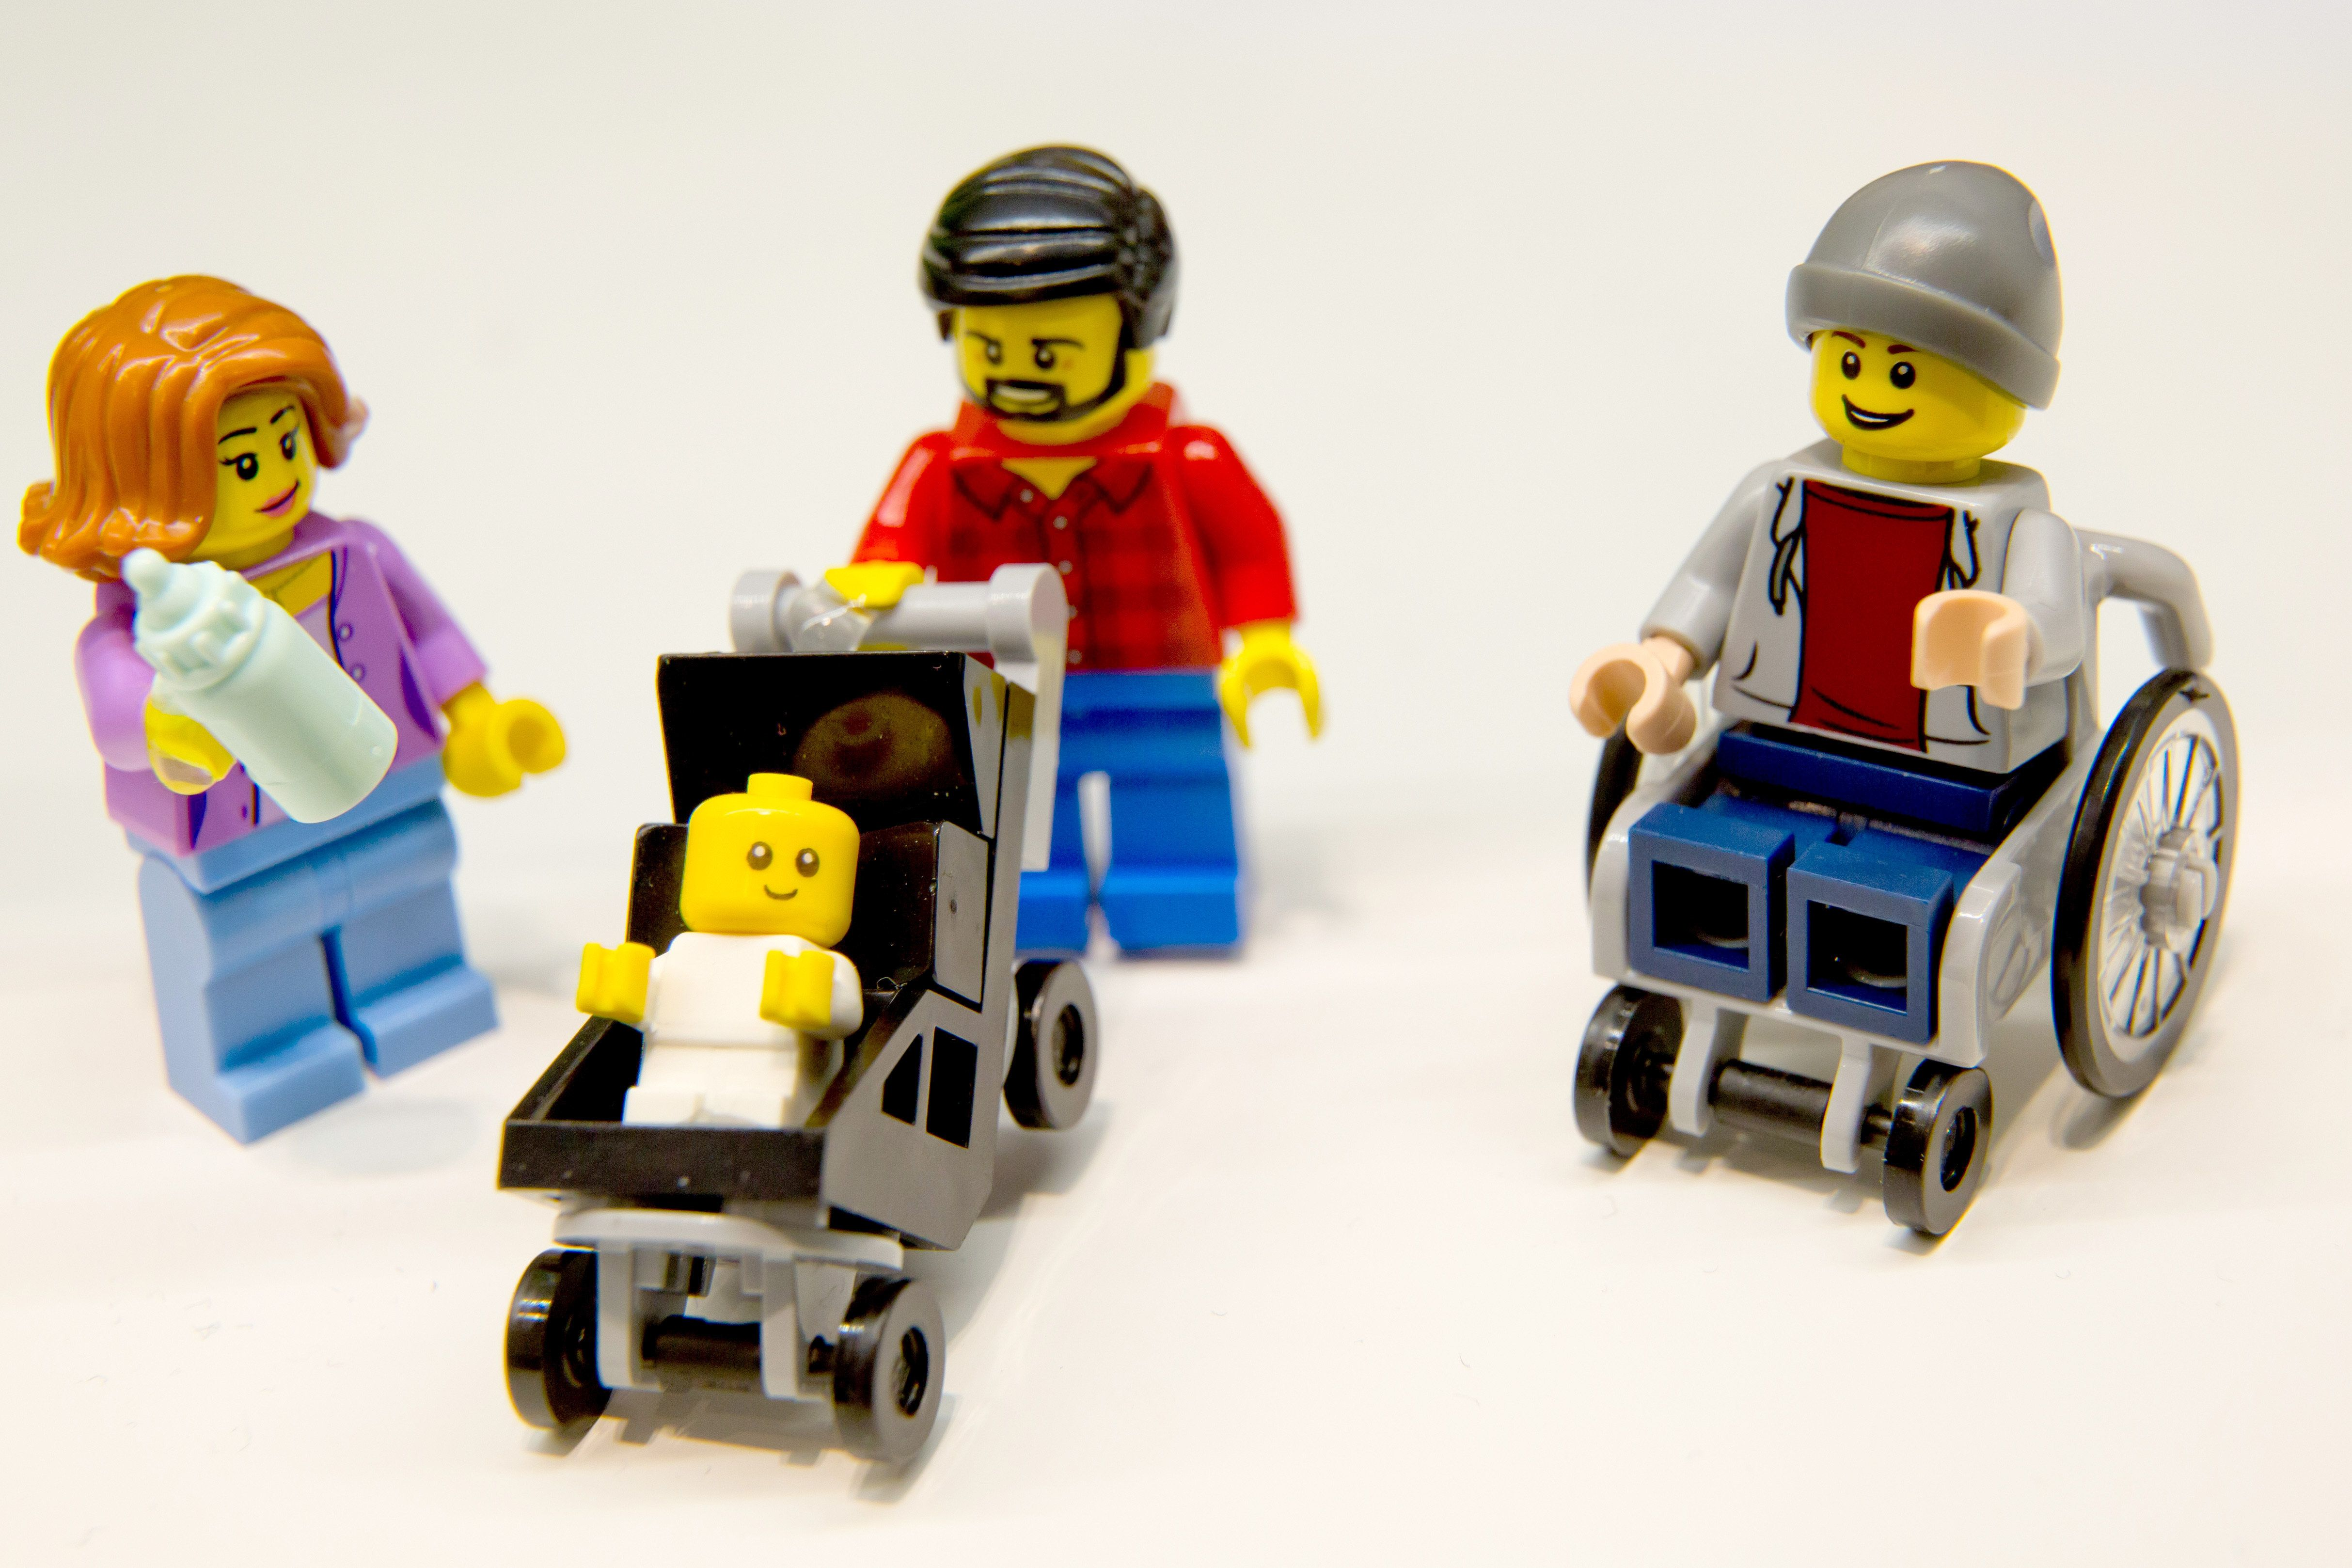 New LEGO minifigures, including a stay-at-home dad, working mom, baby in a stroller and young man in a wheelchair.